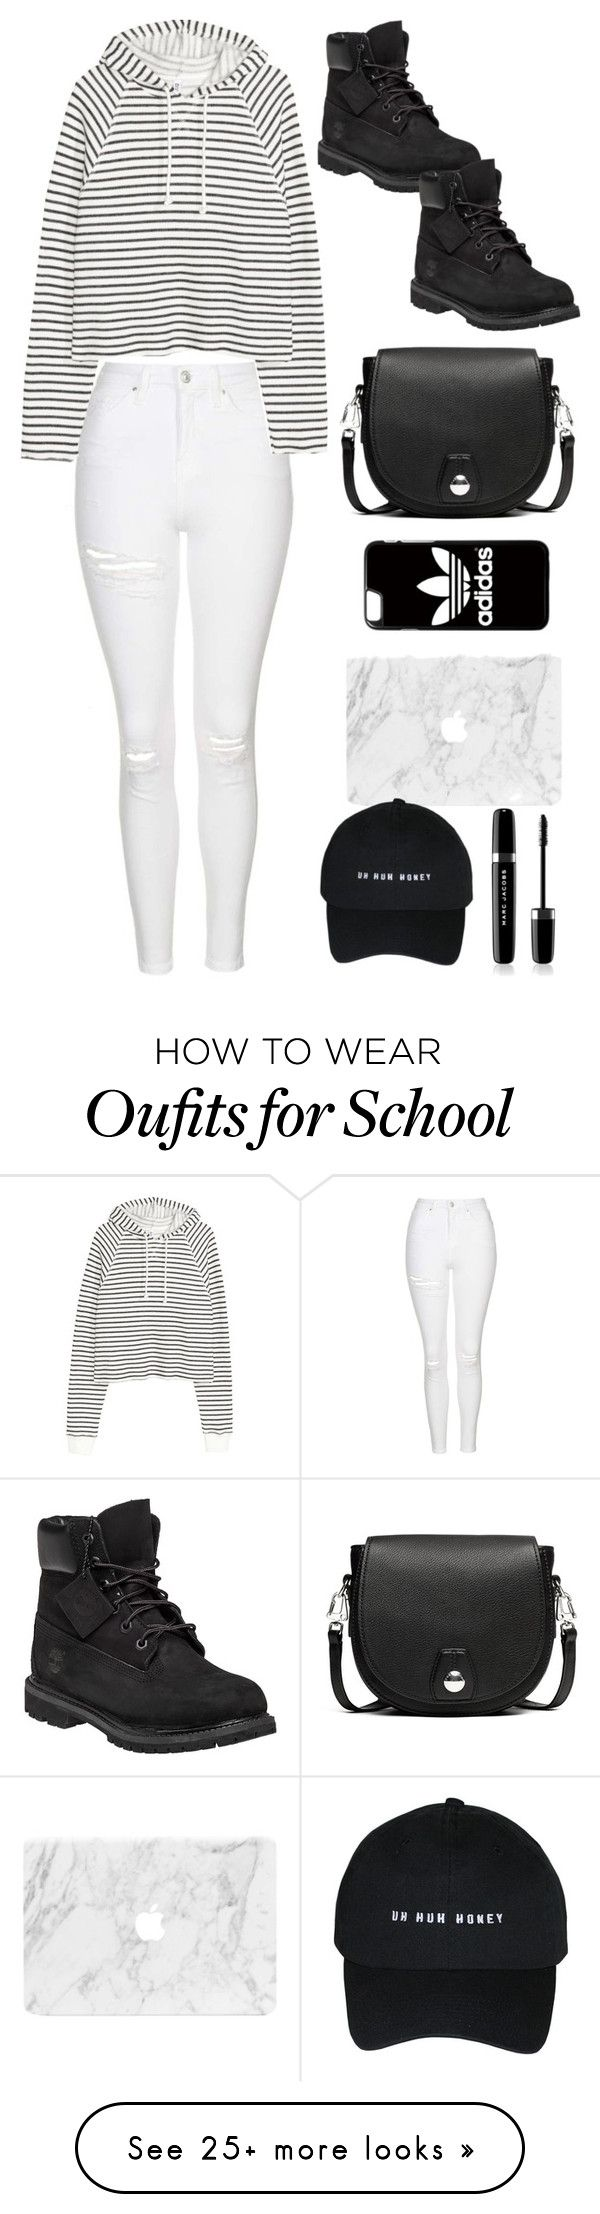 """outfit for school"" by katgorostiza on Polyvore featuring Topshop, Timberland, rag & bone, adidas and Marc Jacobs"